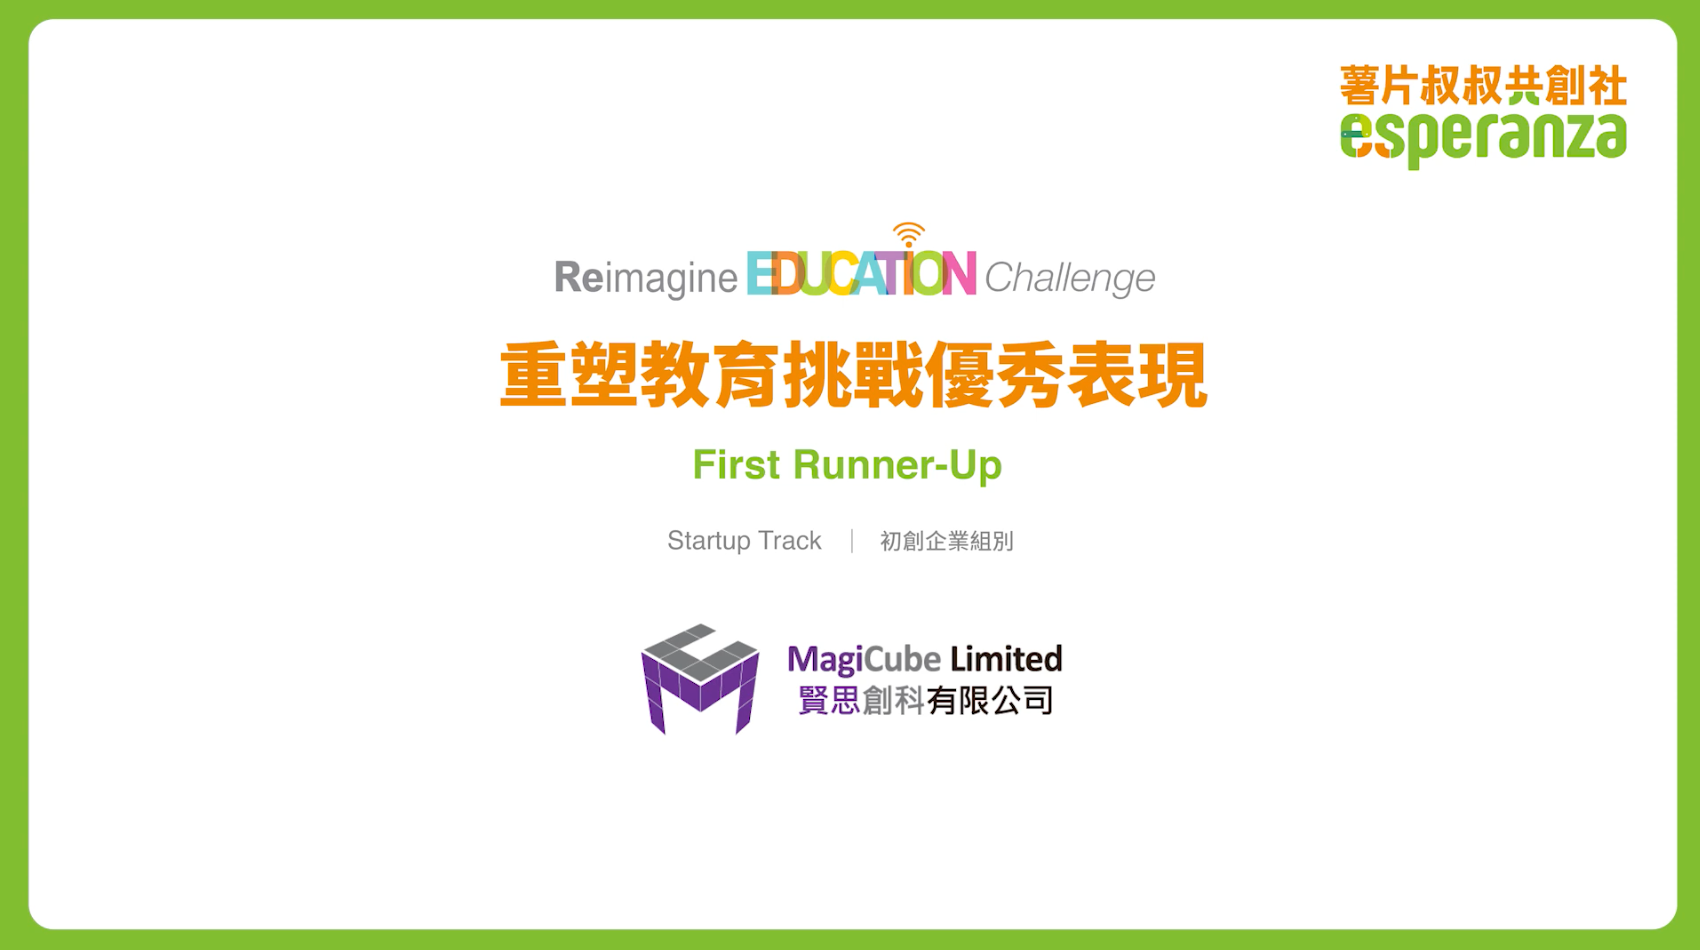 MagiCube Una First Runner-up in Reimagine Education Challenge